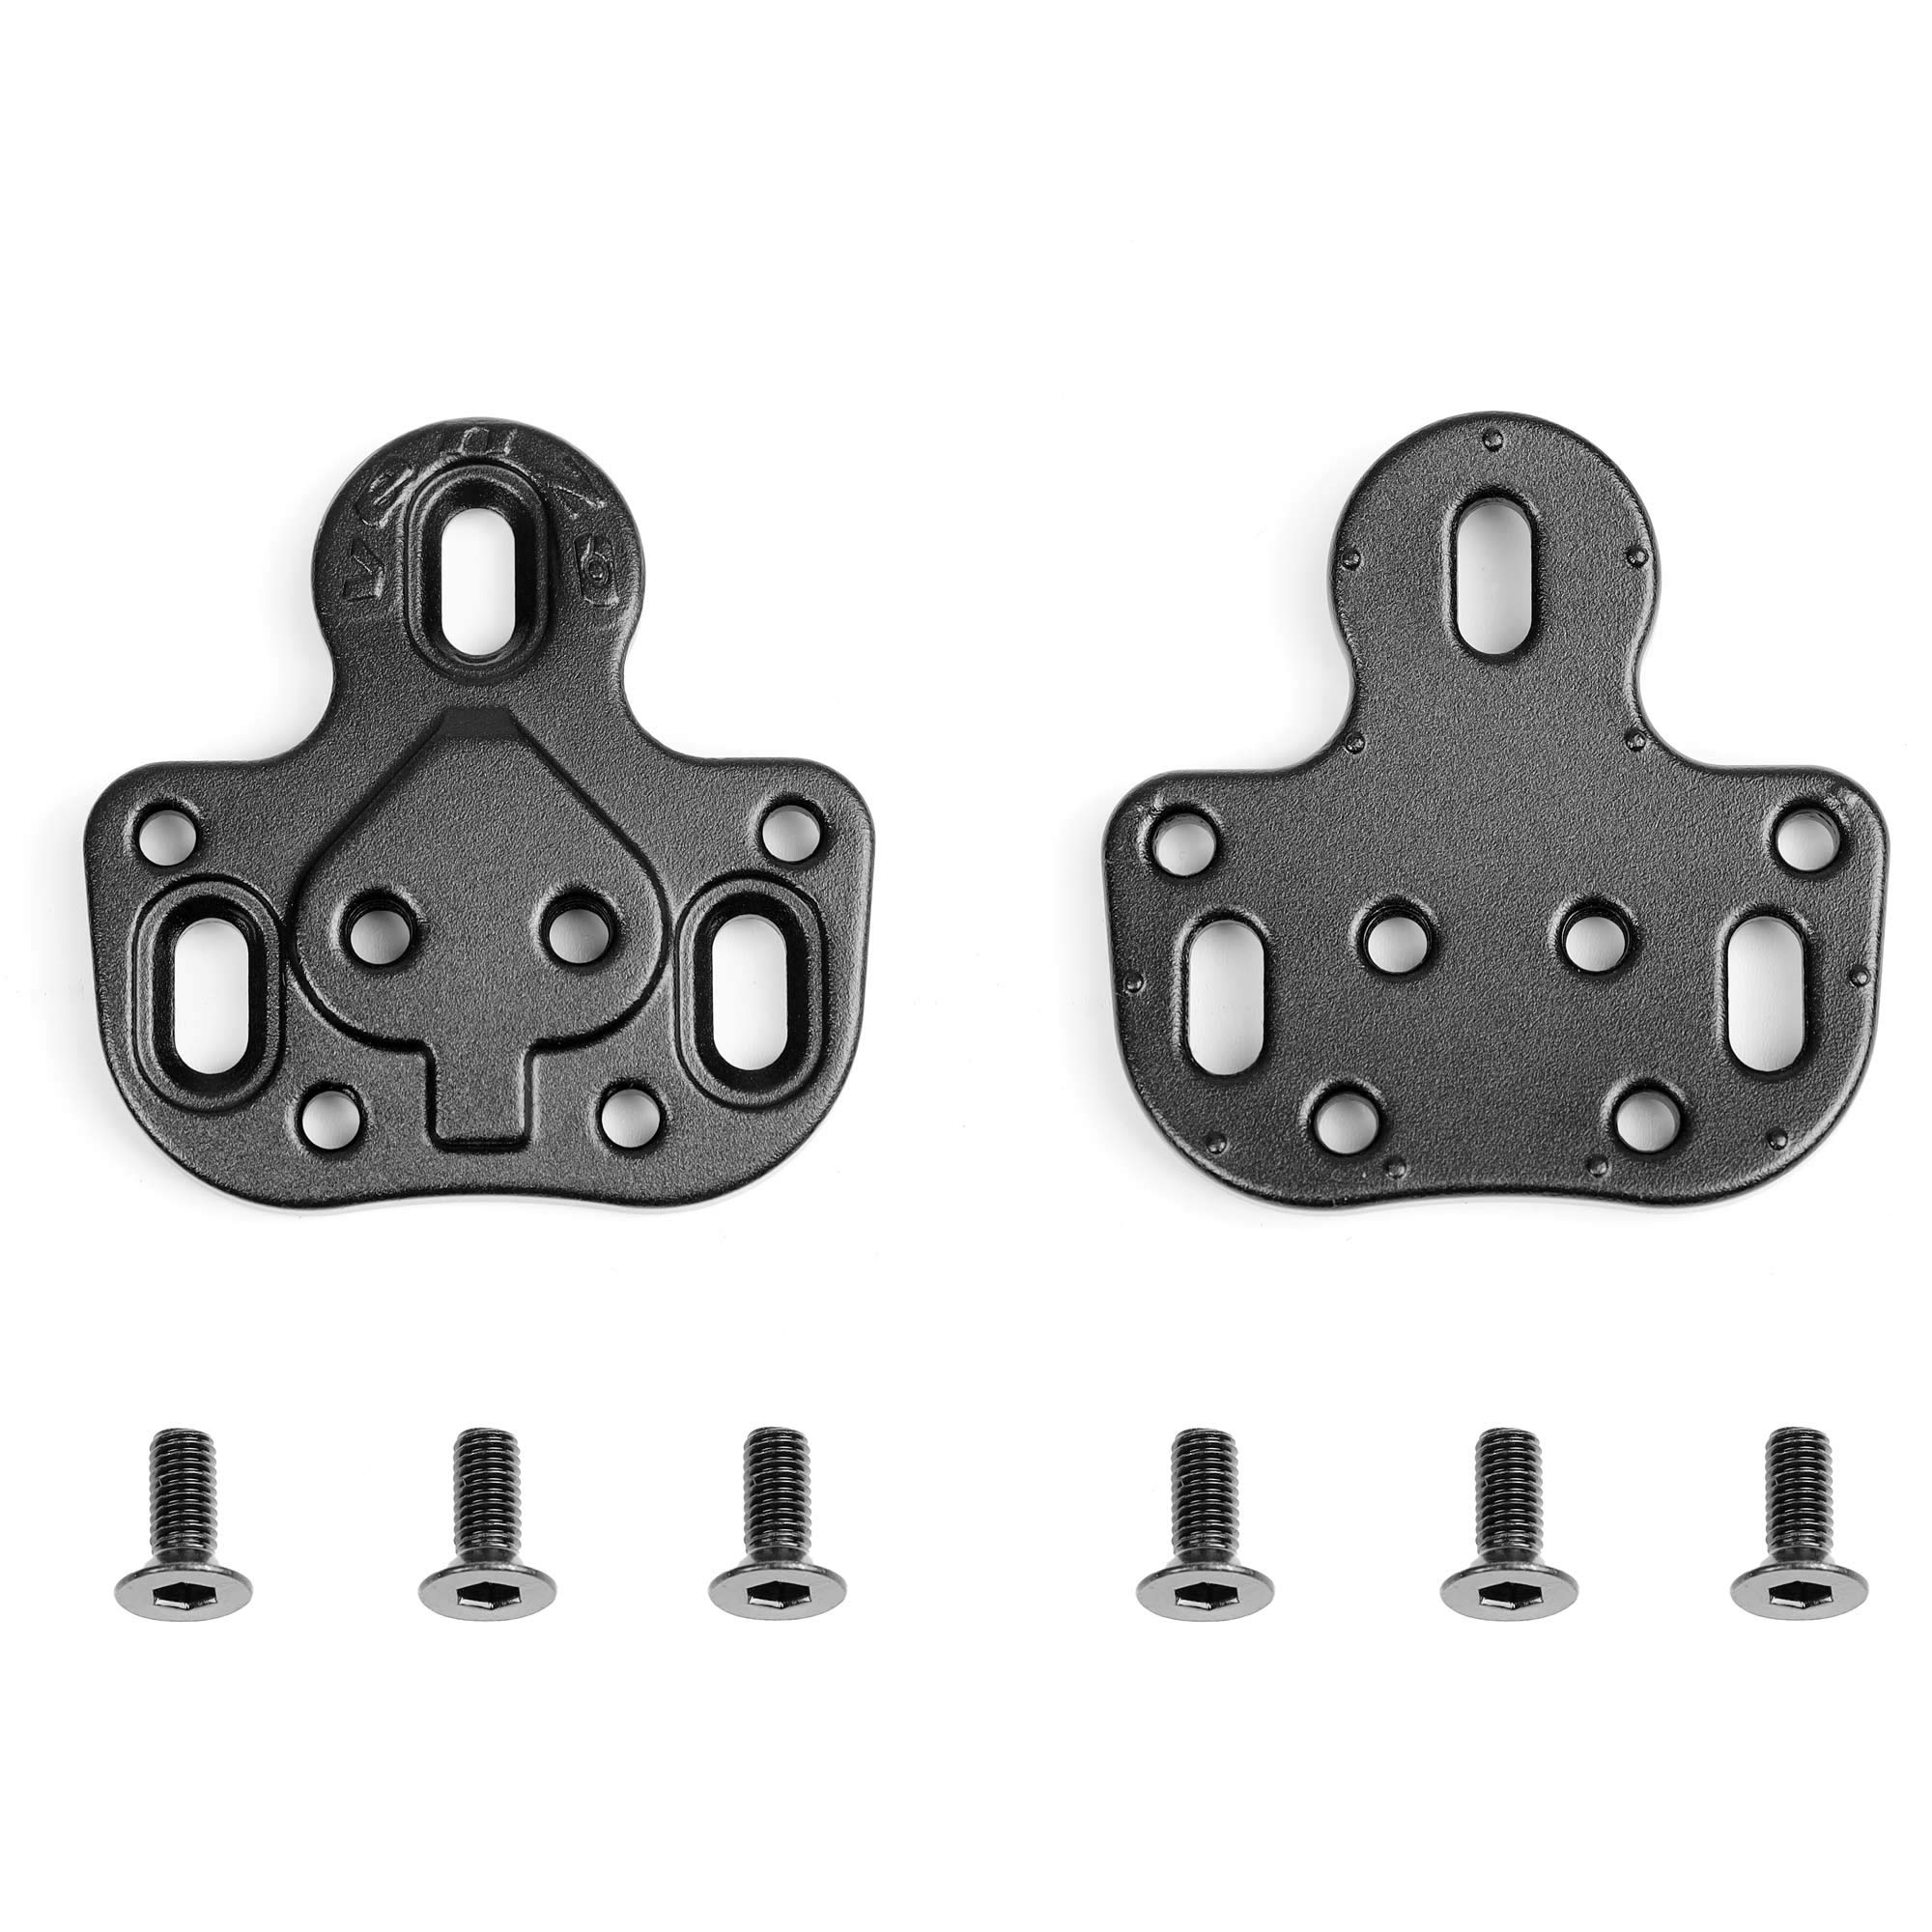 Bicycle Compatible with Shimano SPD Crankbrother 2 Holes Cleats Adapter - Using MTB Type SPD Cleats on Road or Spin Bike Shoes with 3 Holes - Converting Adapters ONLY